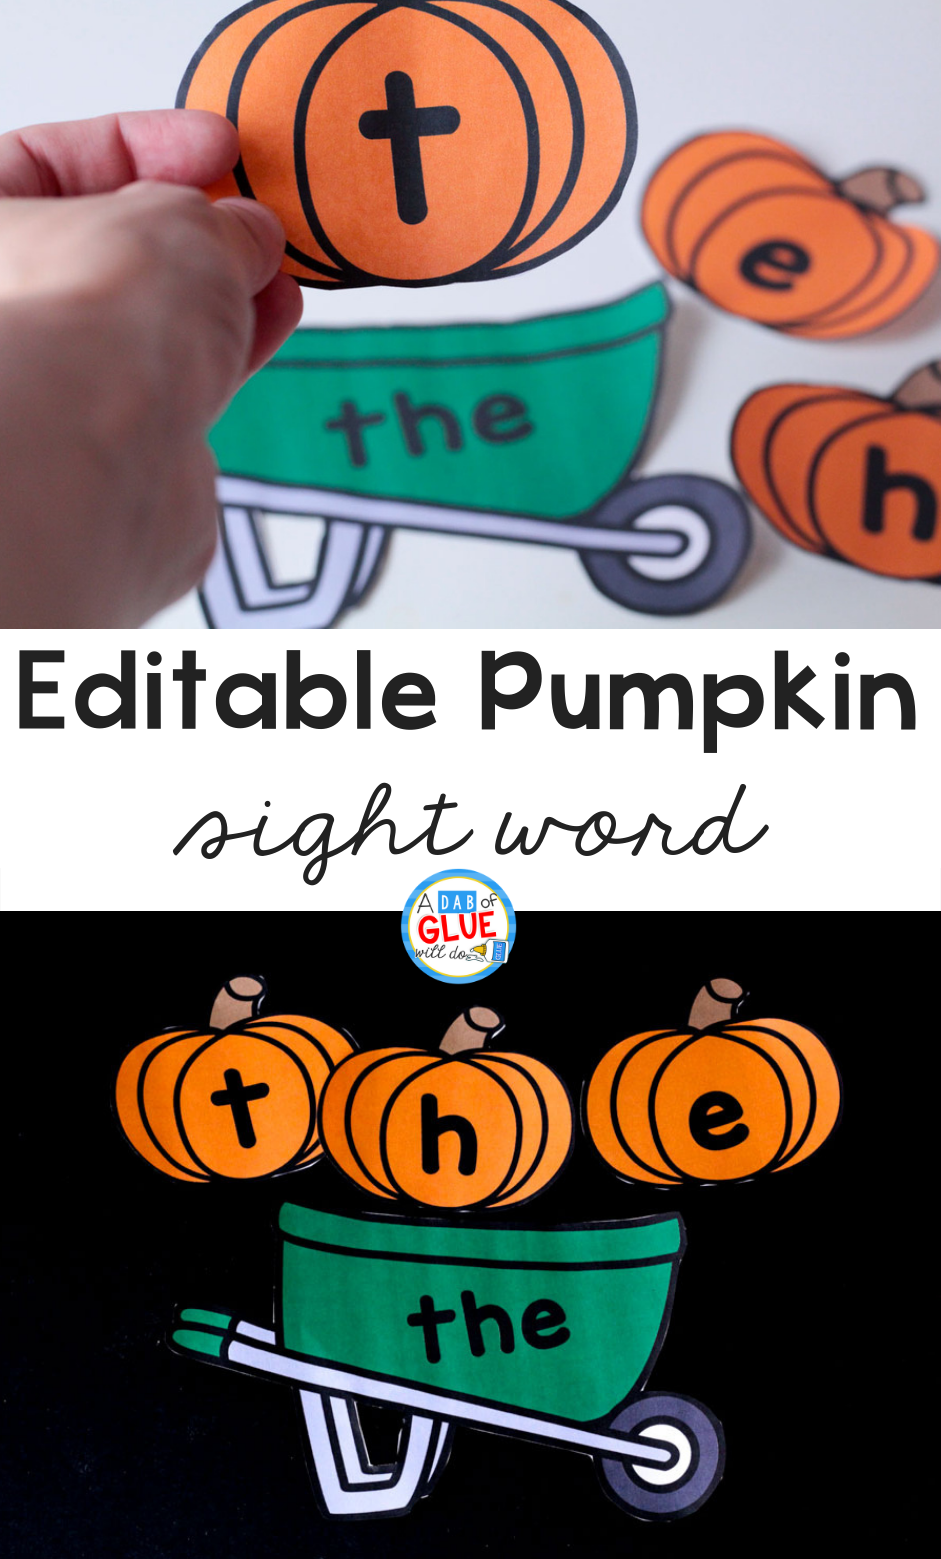 Pumpkin Editable Sight Word Activity